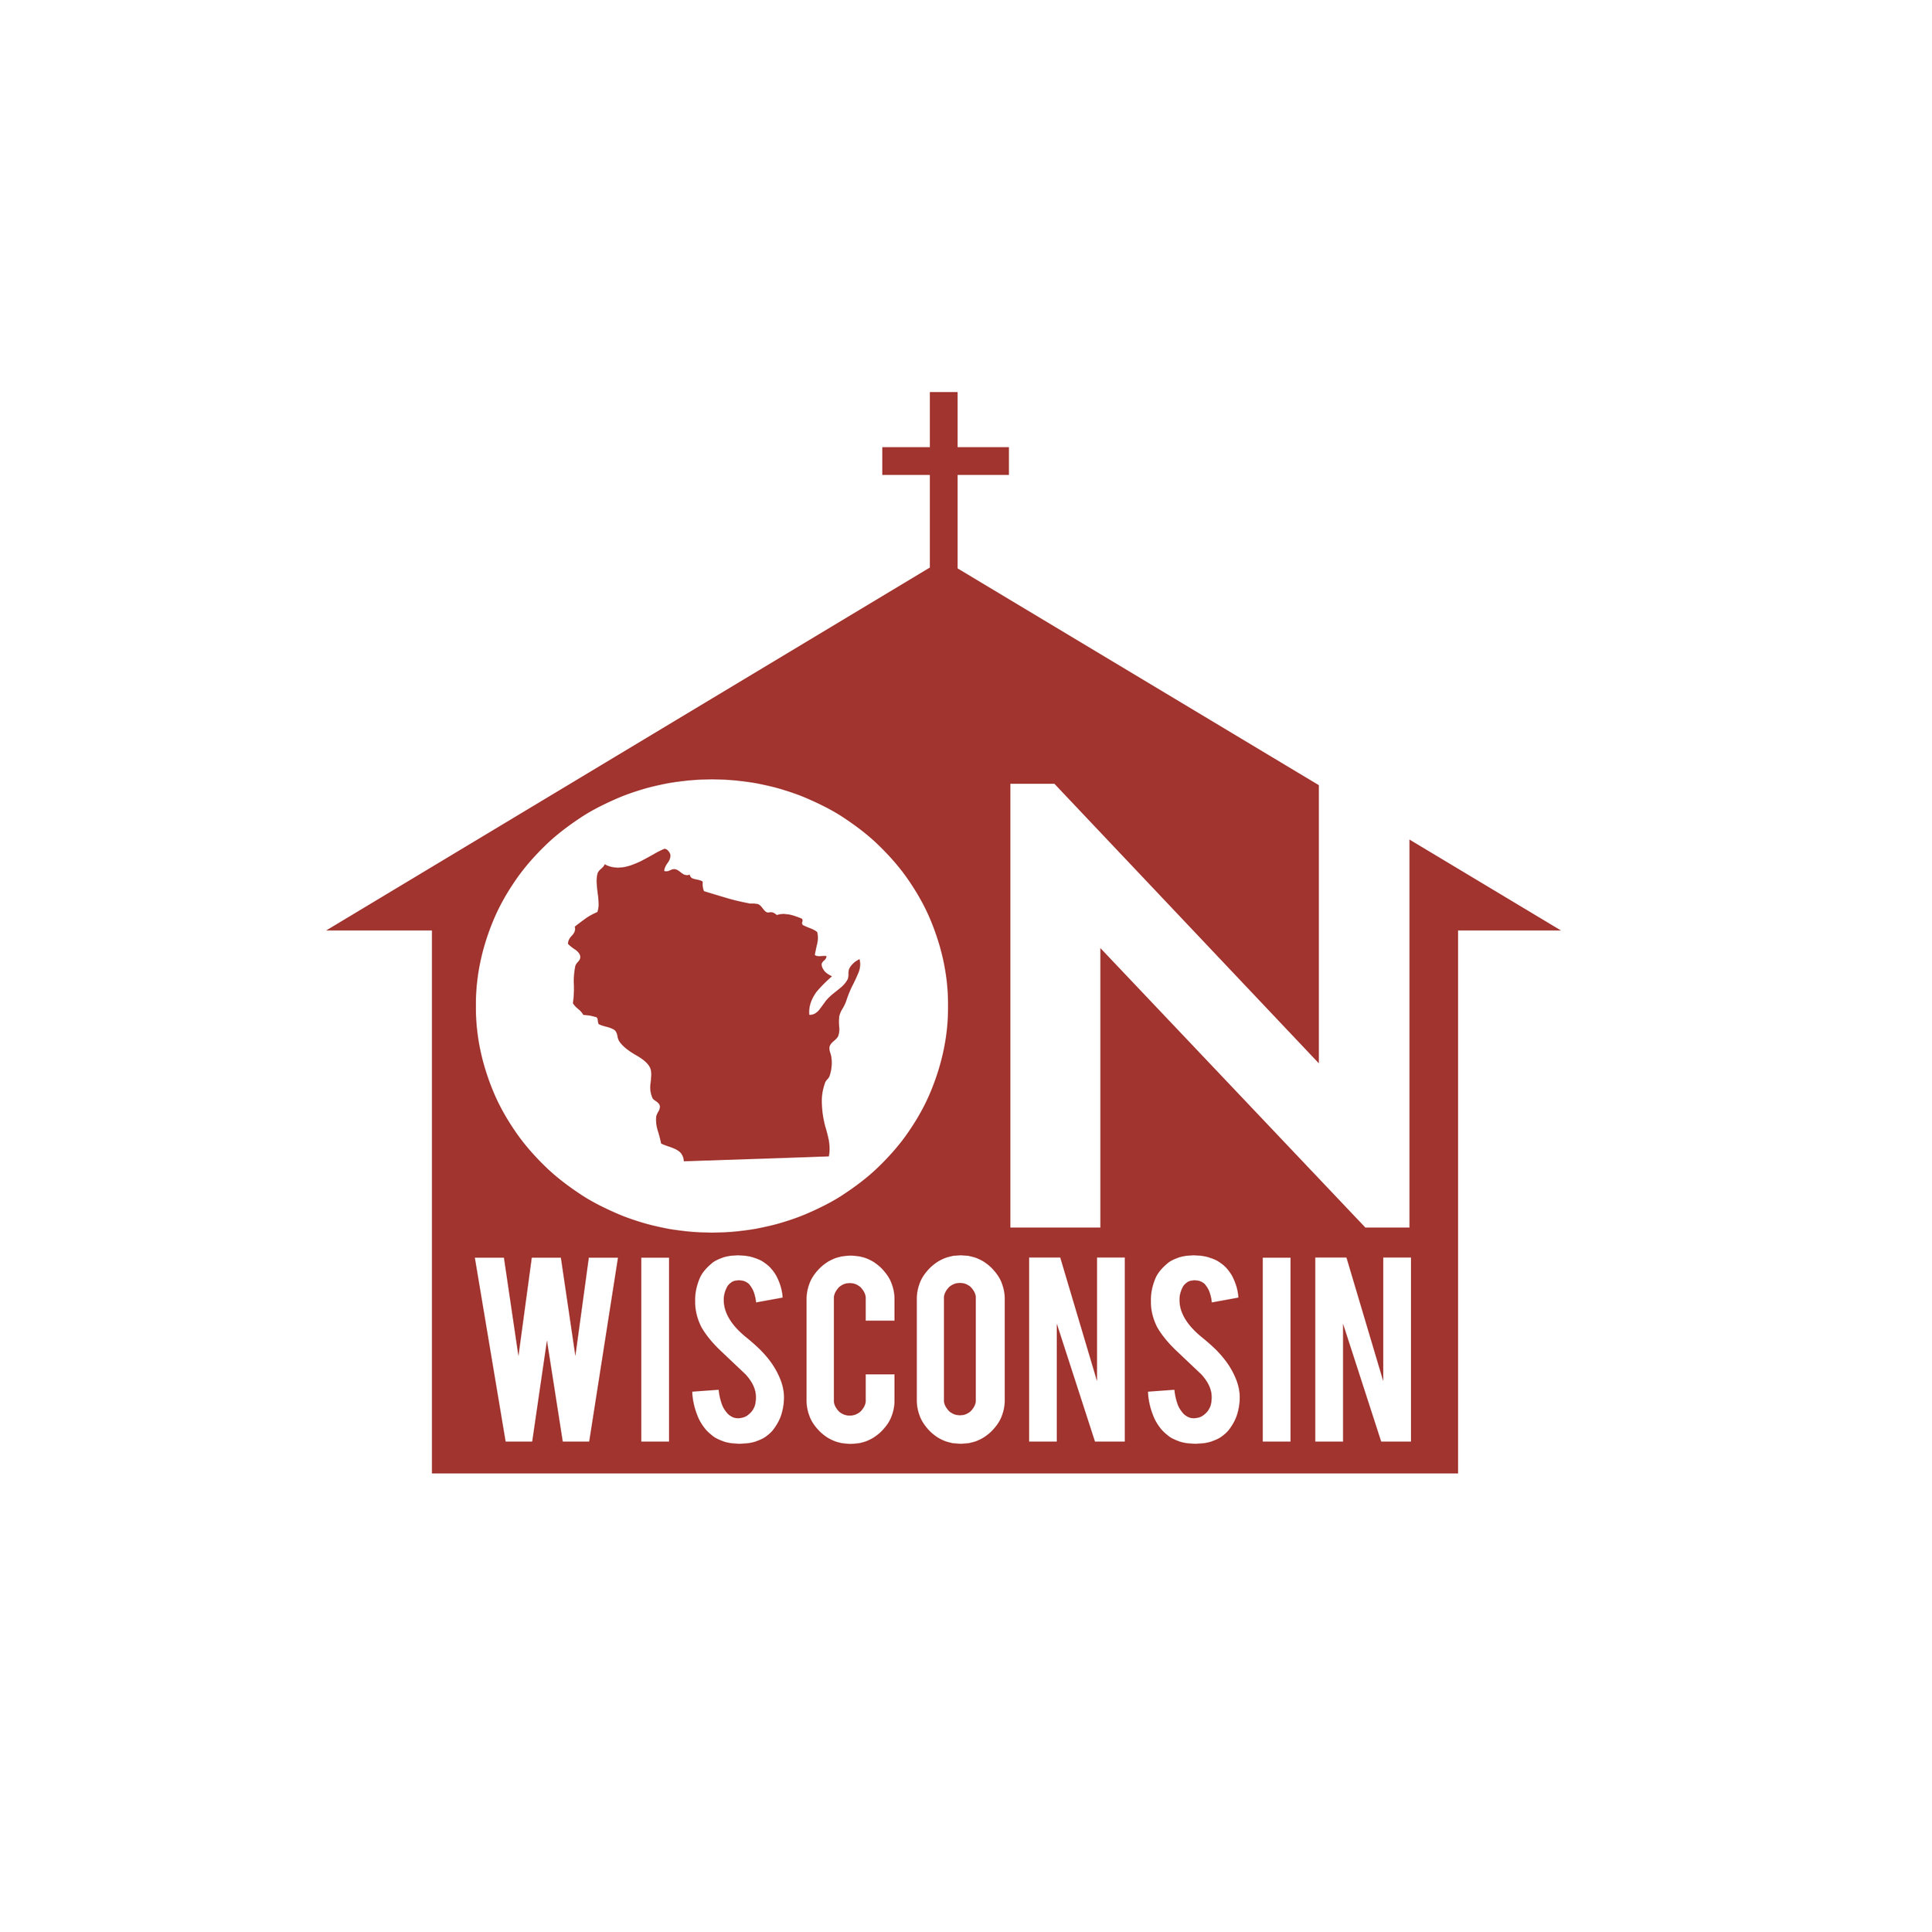 On Wisconsin Church Planting Network - Wisconsin is the 6th least religious state in our country. We are a part of an exciting movement to triple the amount of PCA churches planted in the state of Wisconsin in the next 10 years.